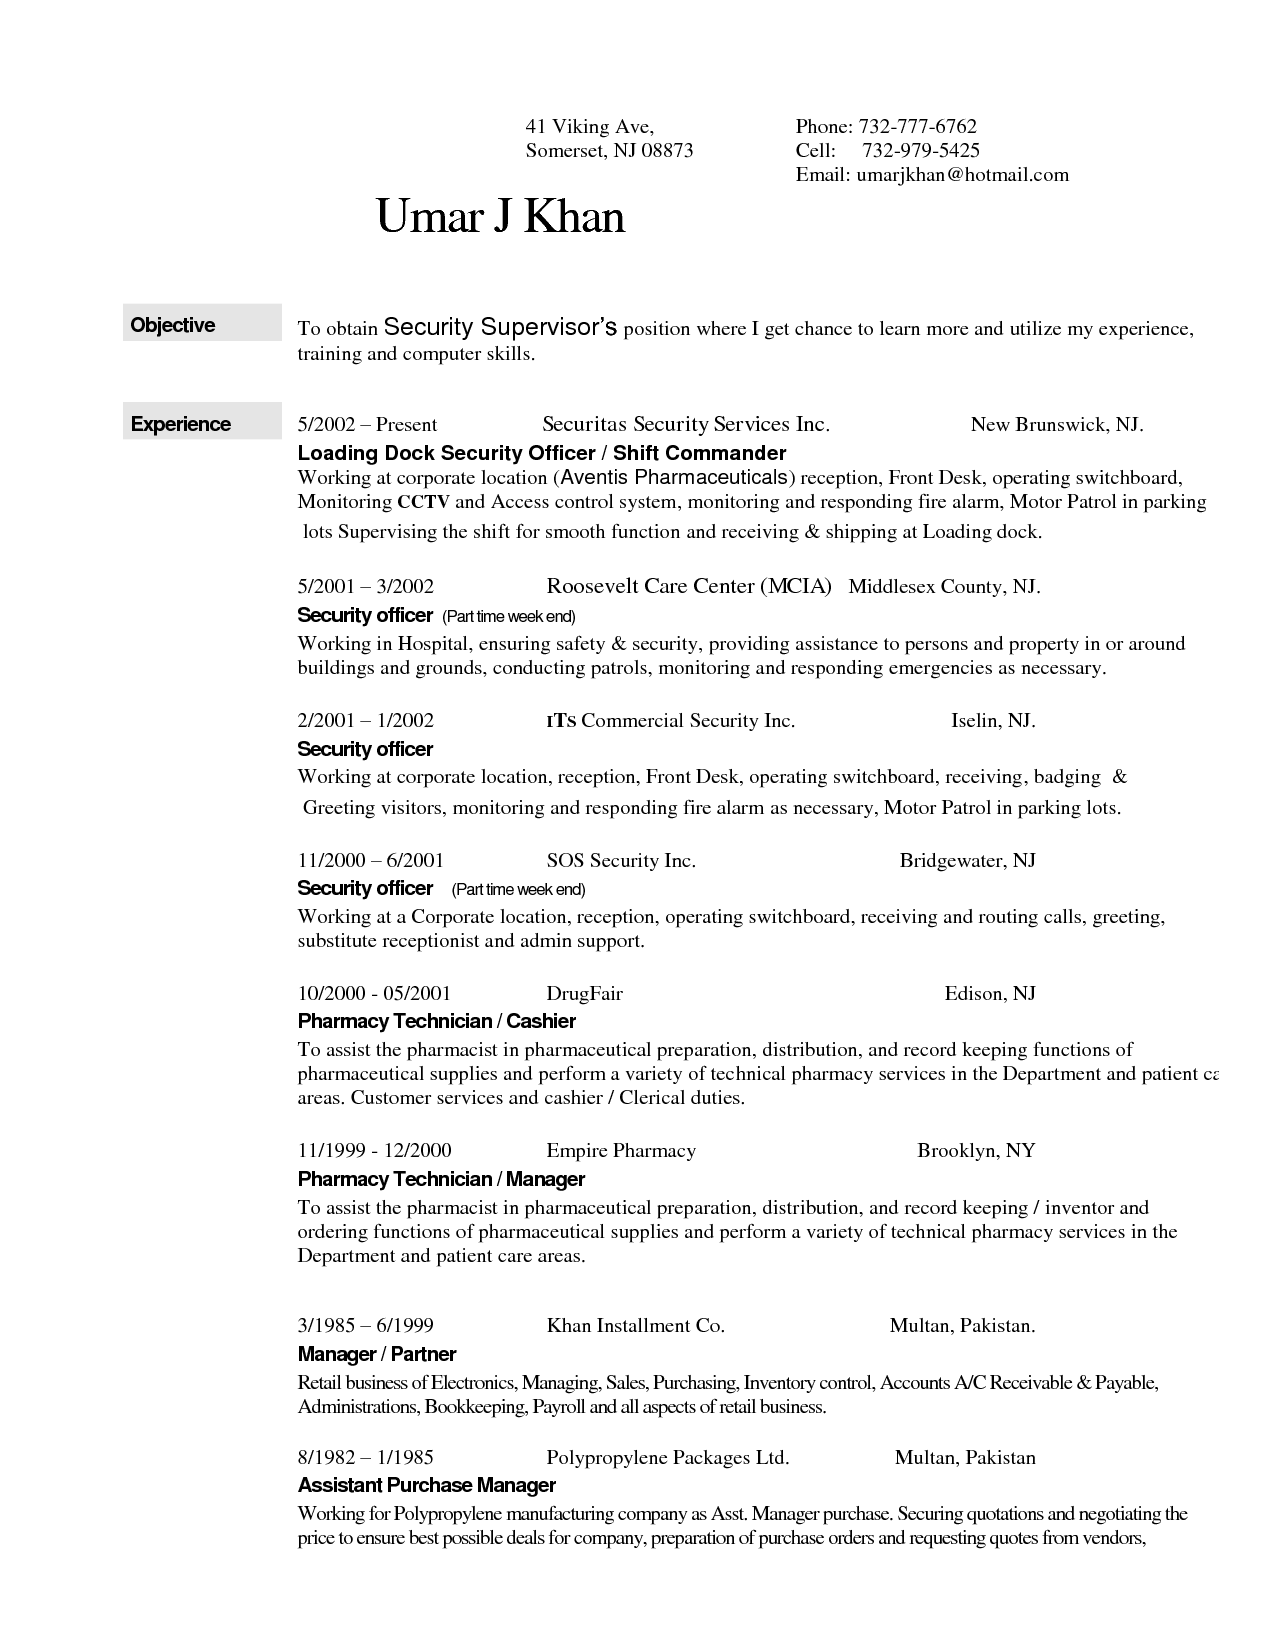 Resume Resume Examples For A Security Job Entry Level Security Guard Resume  Examples Httpwww Jobresume Website